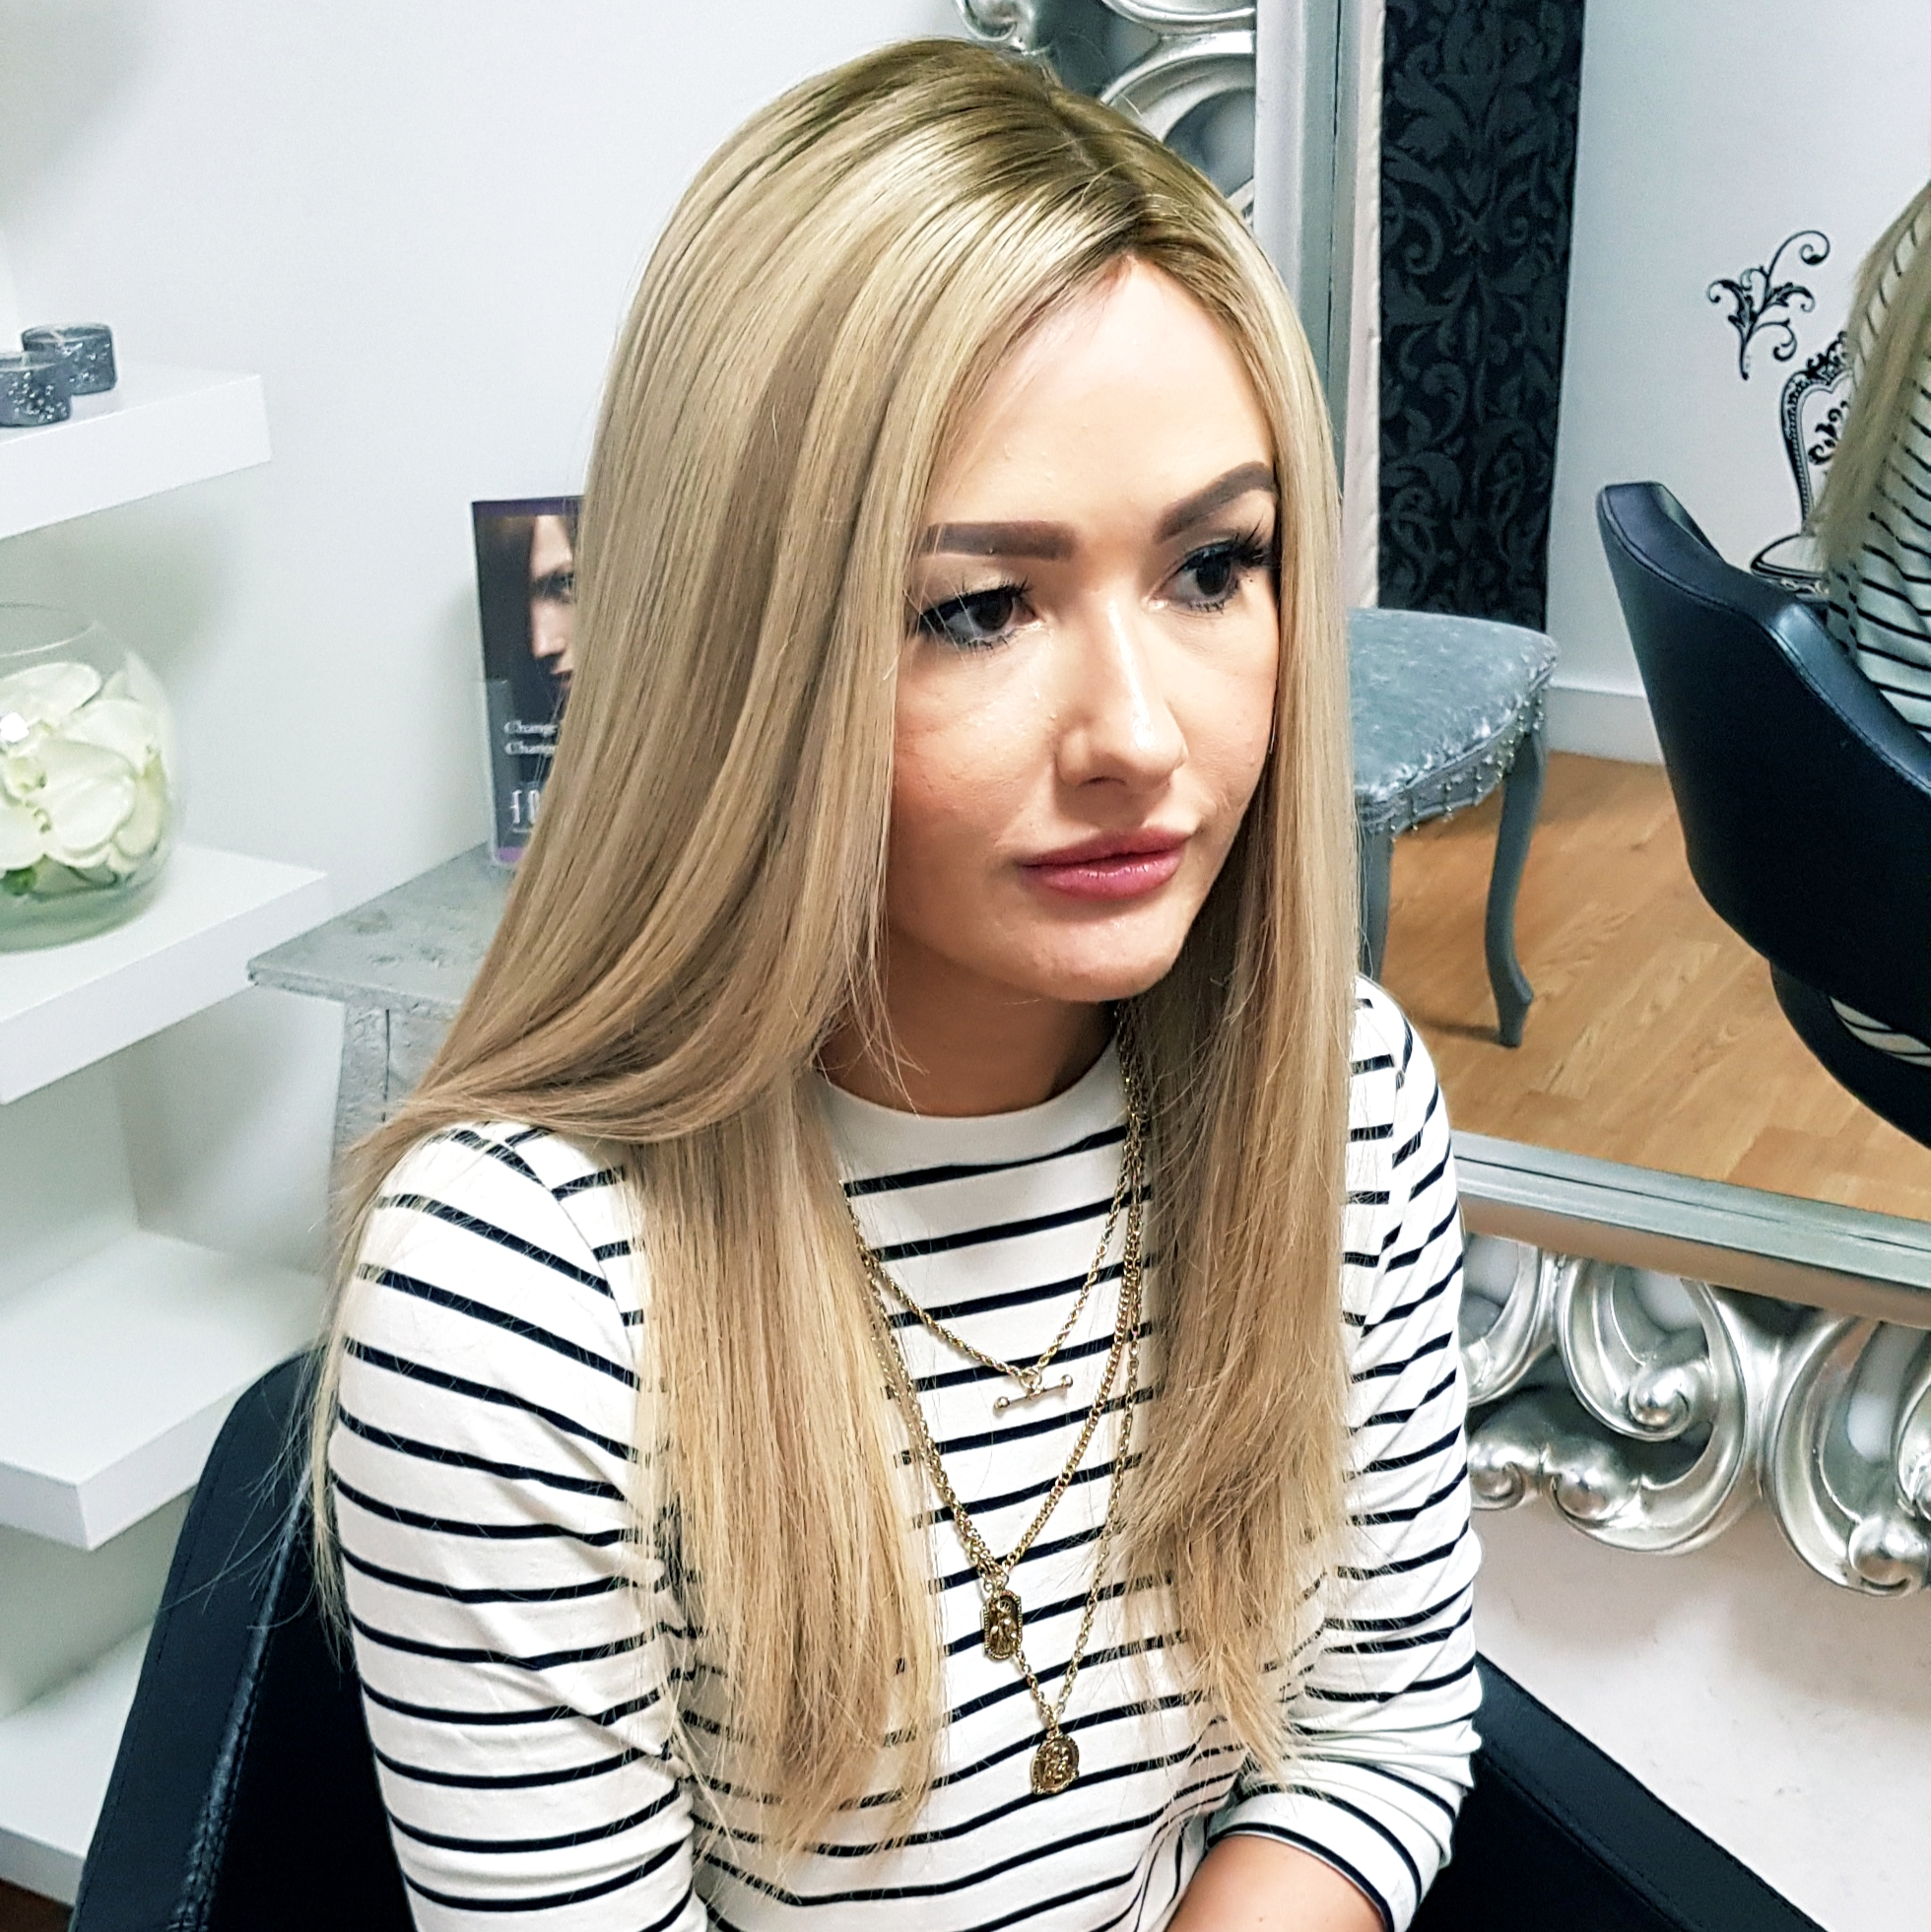 aspire hair customer wearing the 22/9 rooted blonde iwig